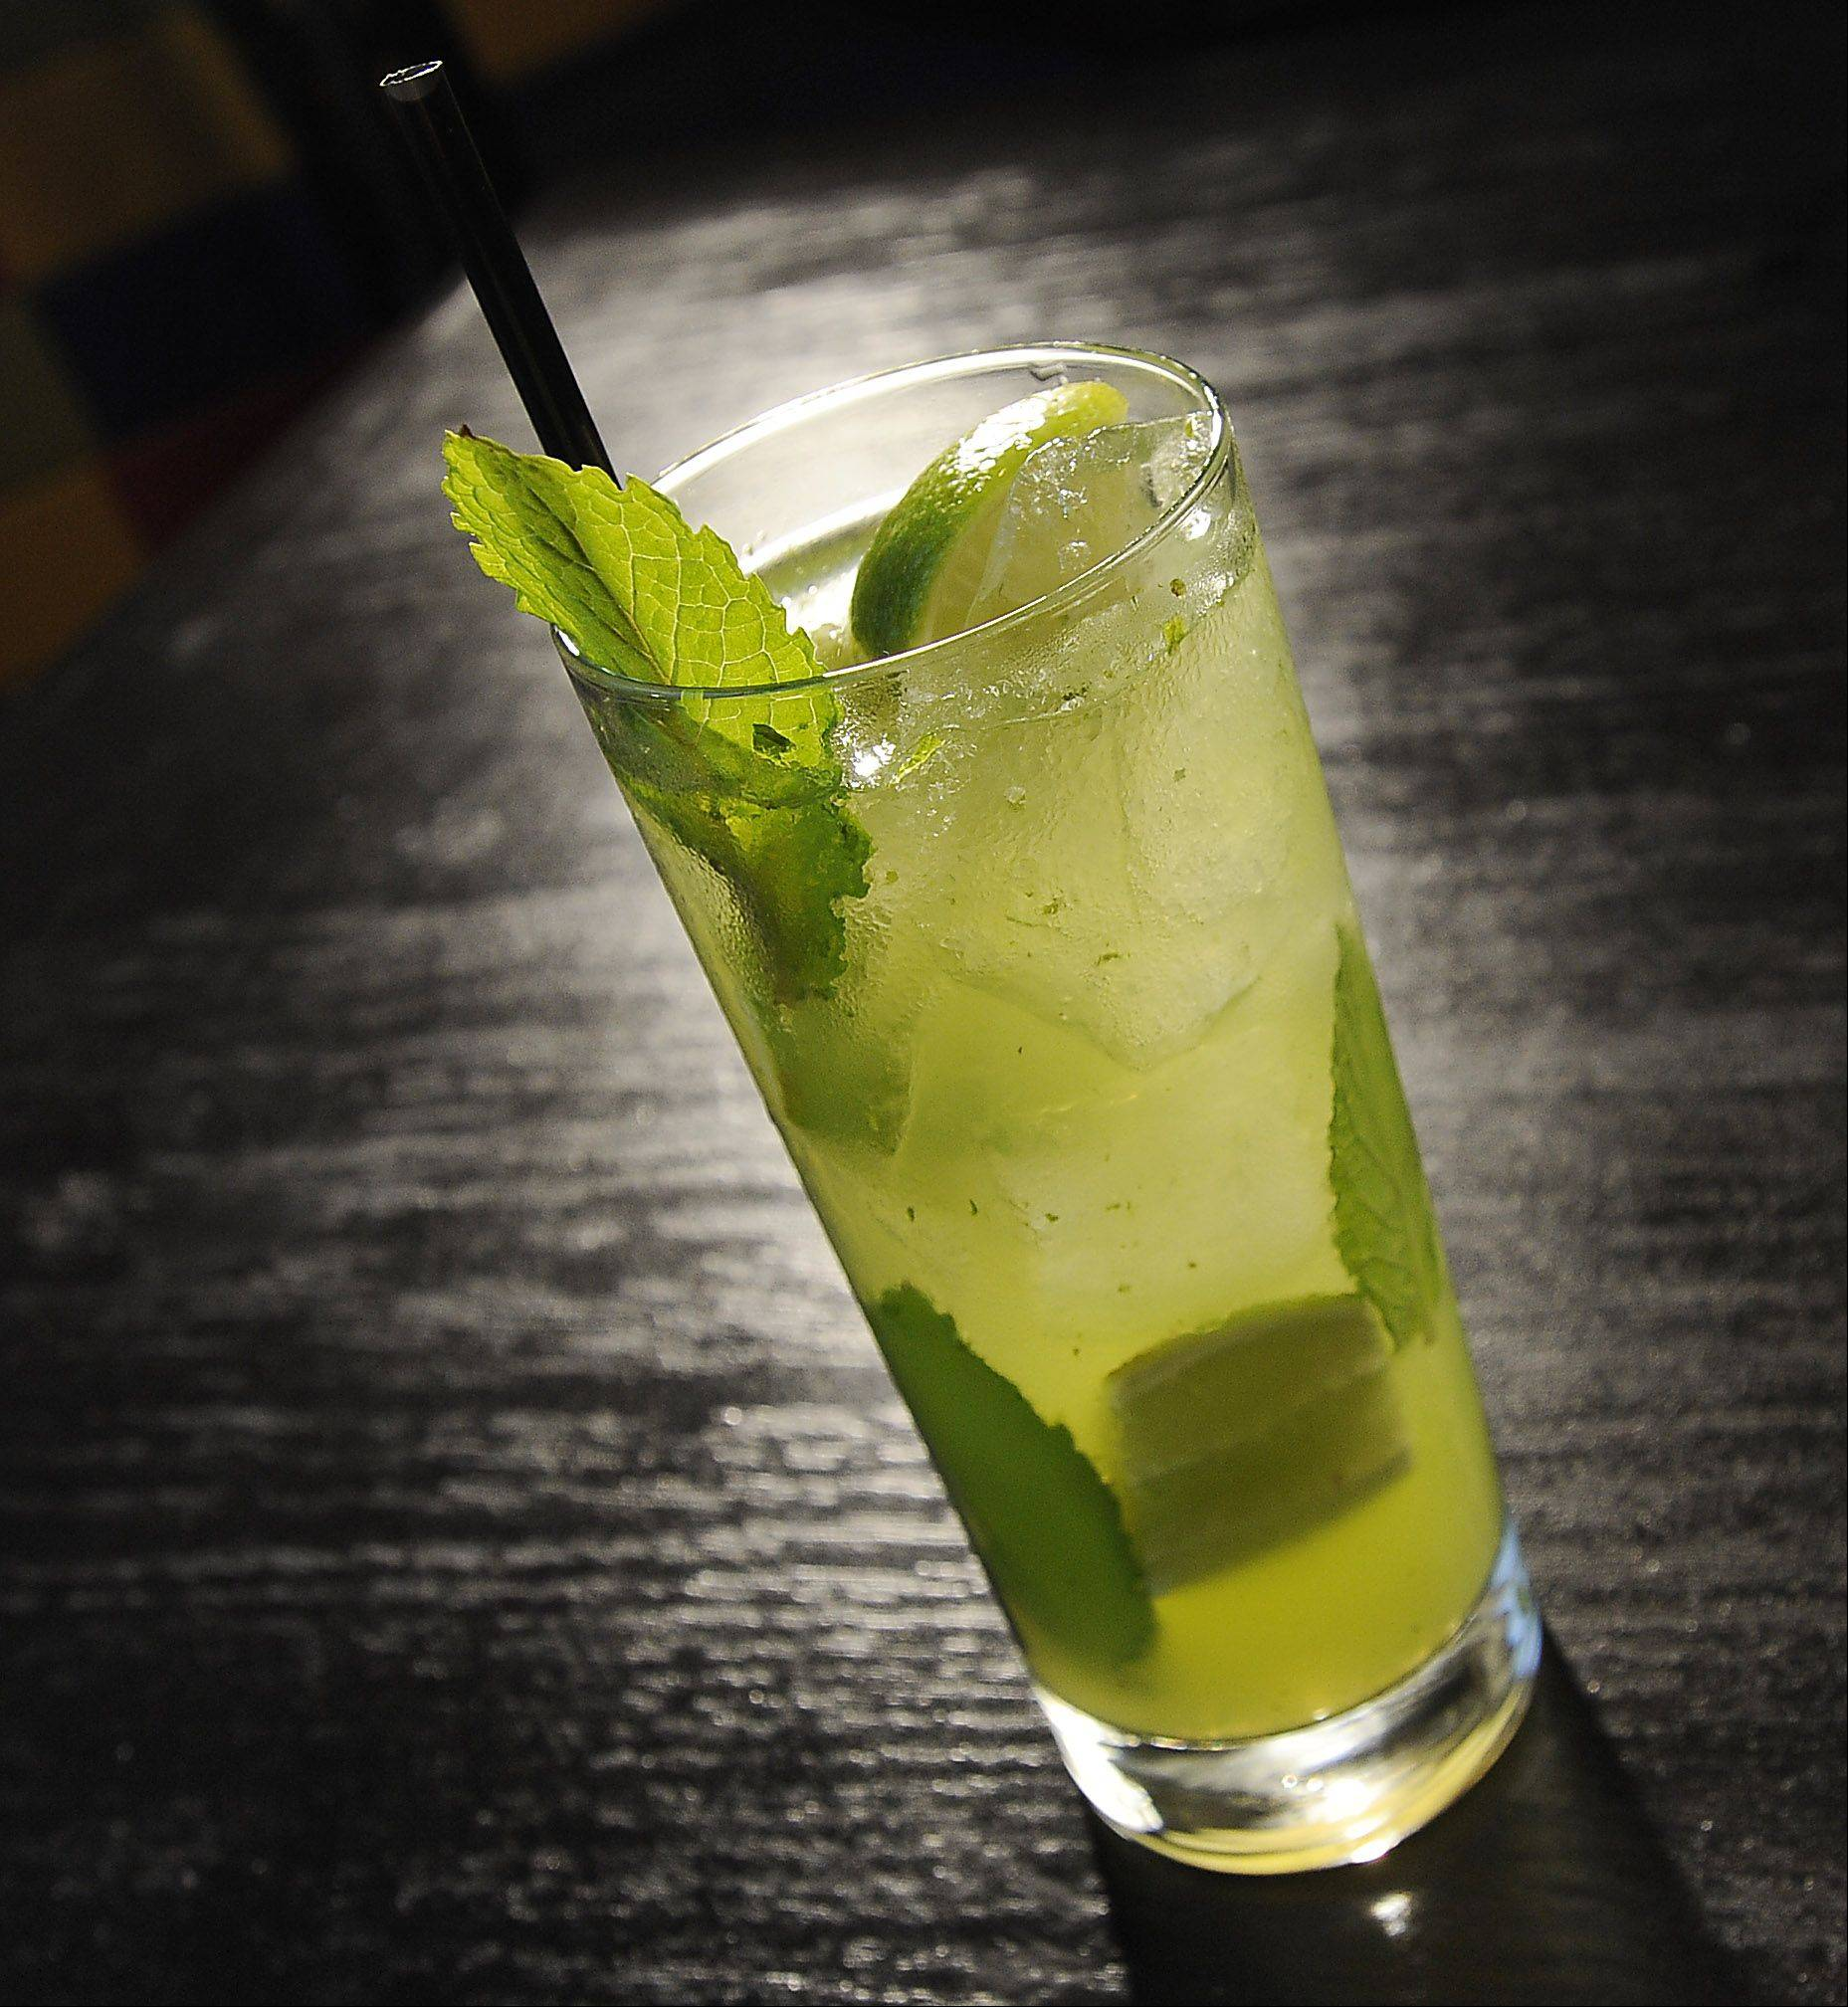 Besides margaritas, mojitos are on the menu at Mia's Cantina.